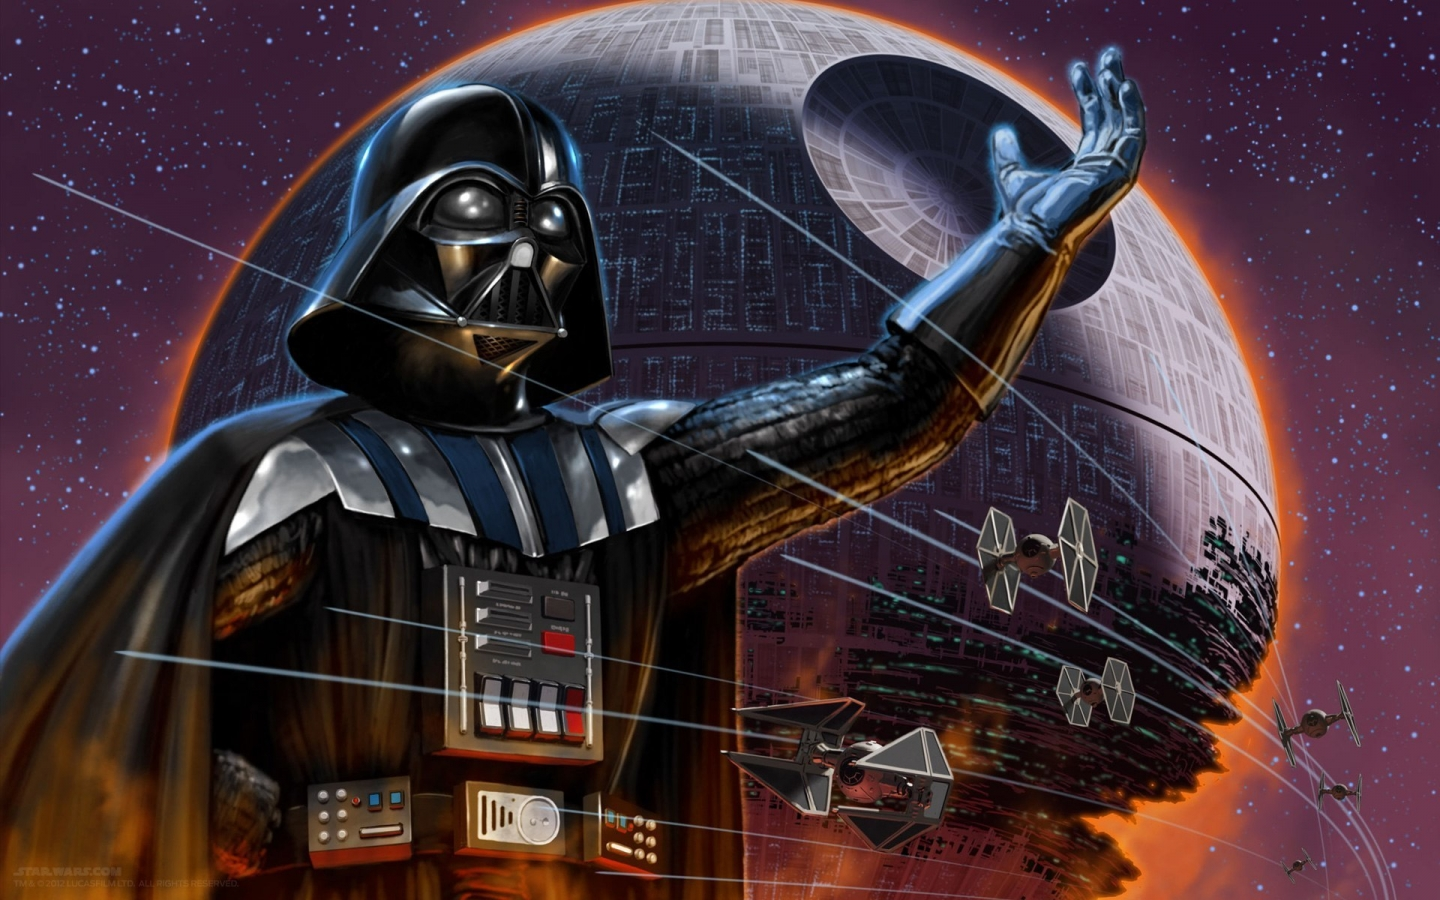 Darth Vader Star Wars Character for 1440 x 900 widescreen resolution